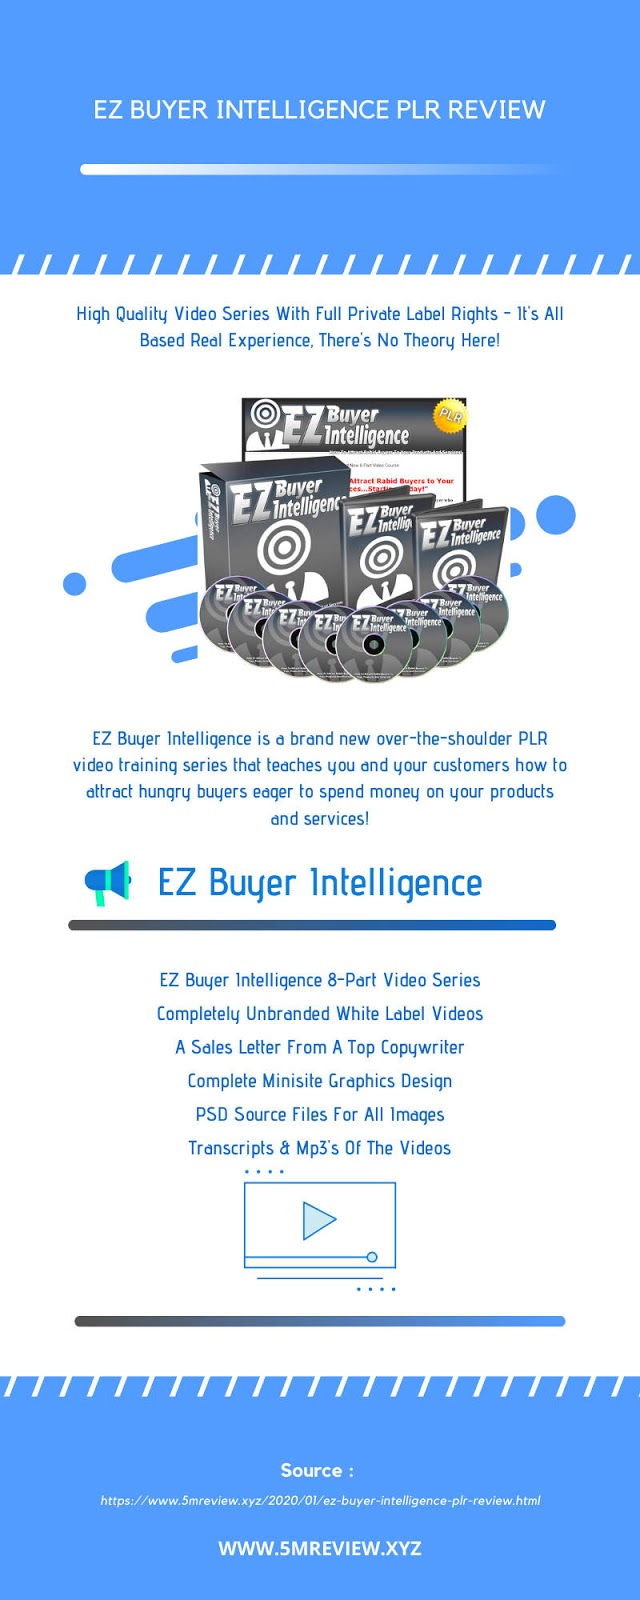 EZ Buyer Intelligence PLR Review - How To Attract Targeted Hungry Buyers Quickly Video Training